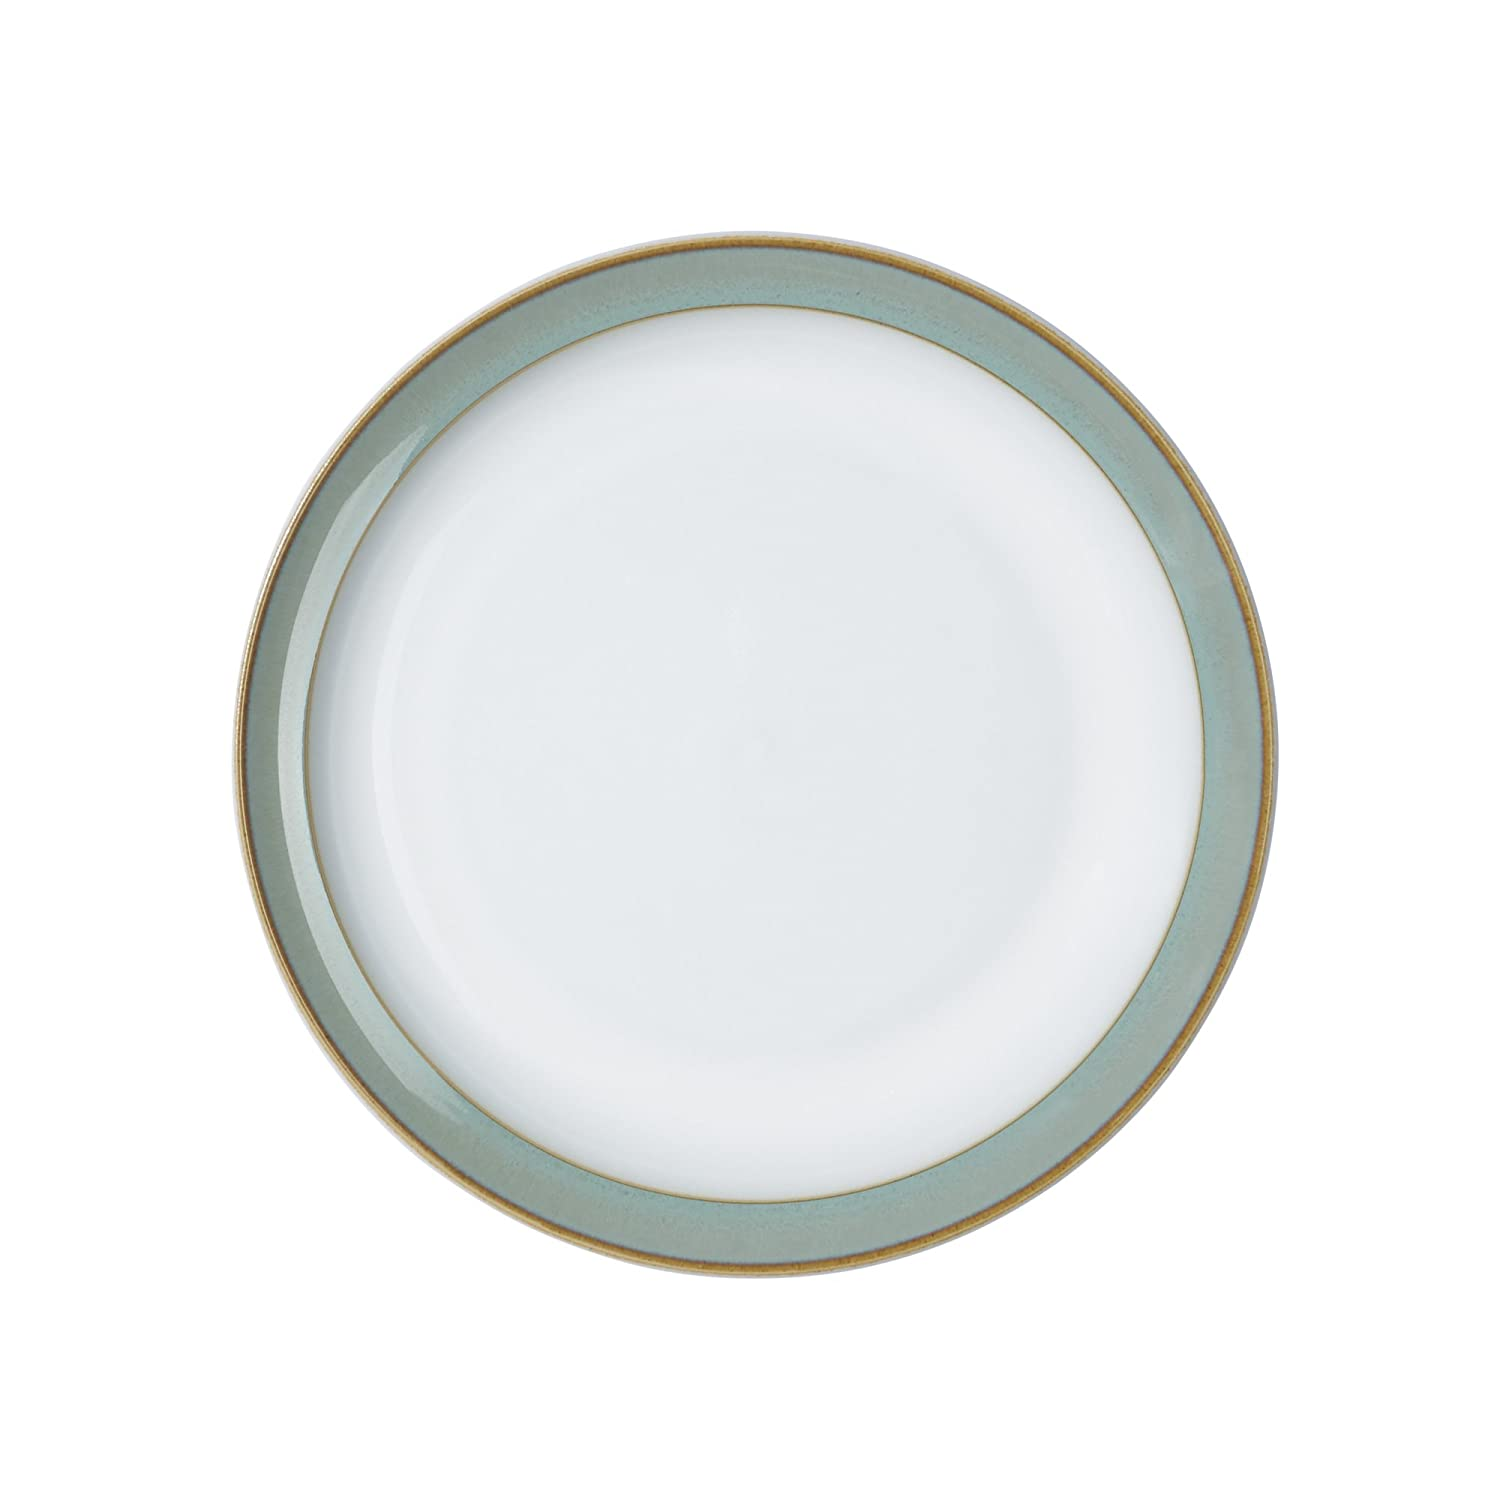 Denby Regency Green Tea Plate 17.5 cm REG-008 Bridal Wedding list gift